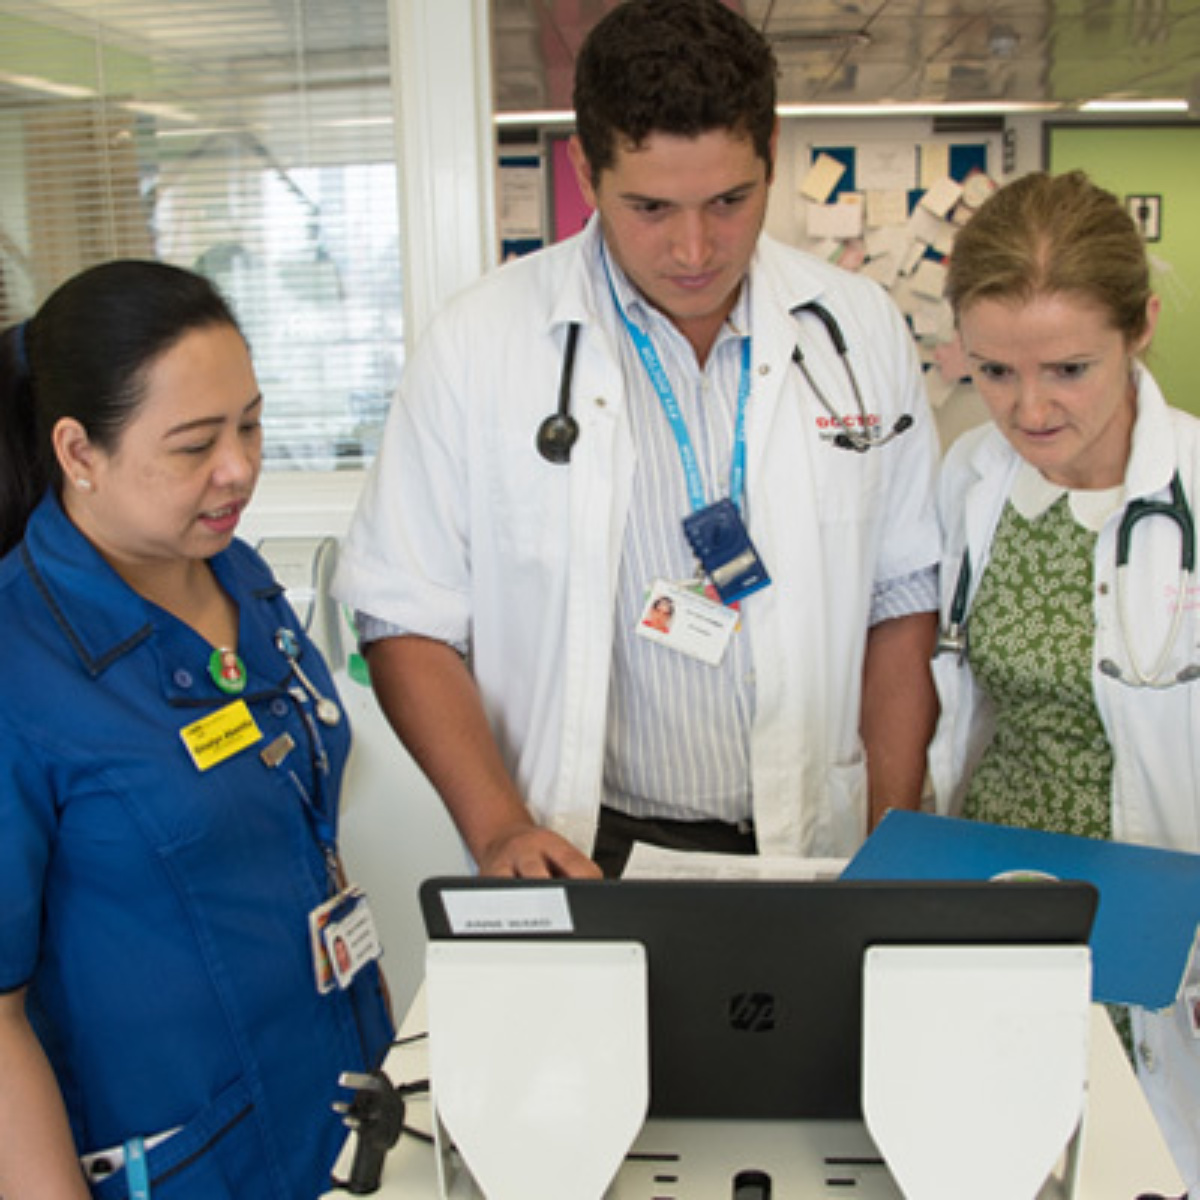 Doctor with nurses in a hospital ward, assessing patient's chart